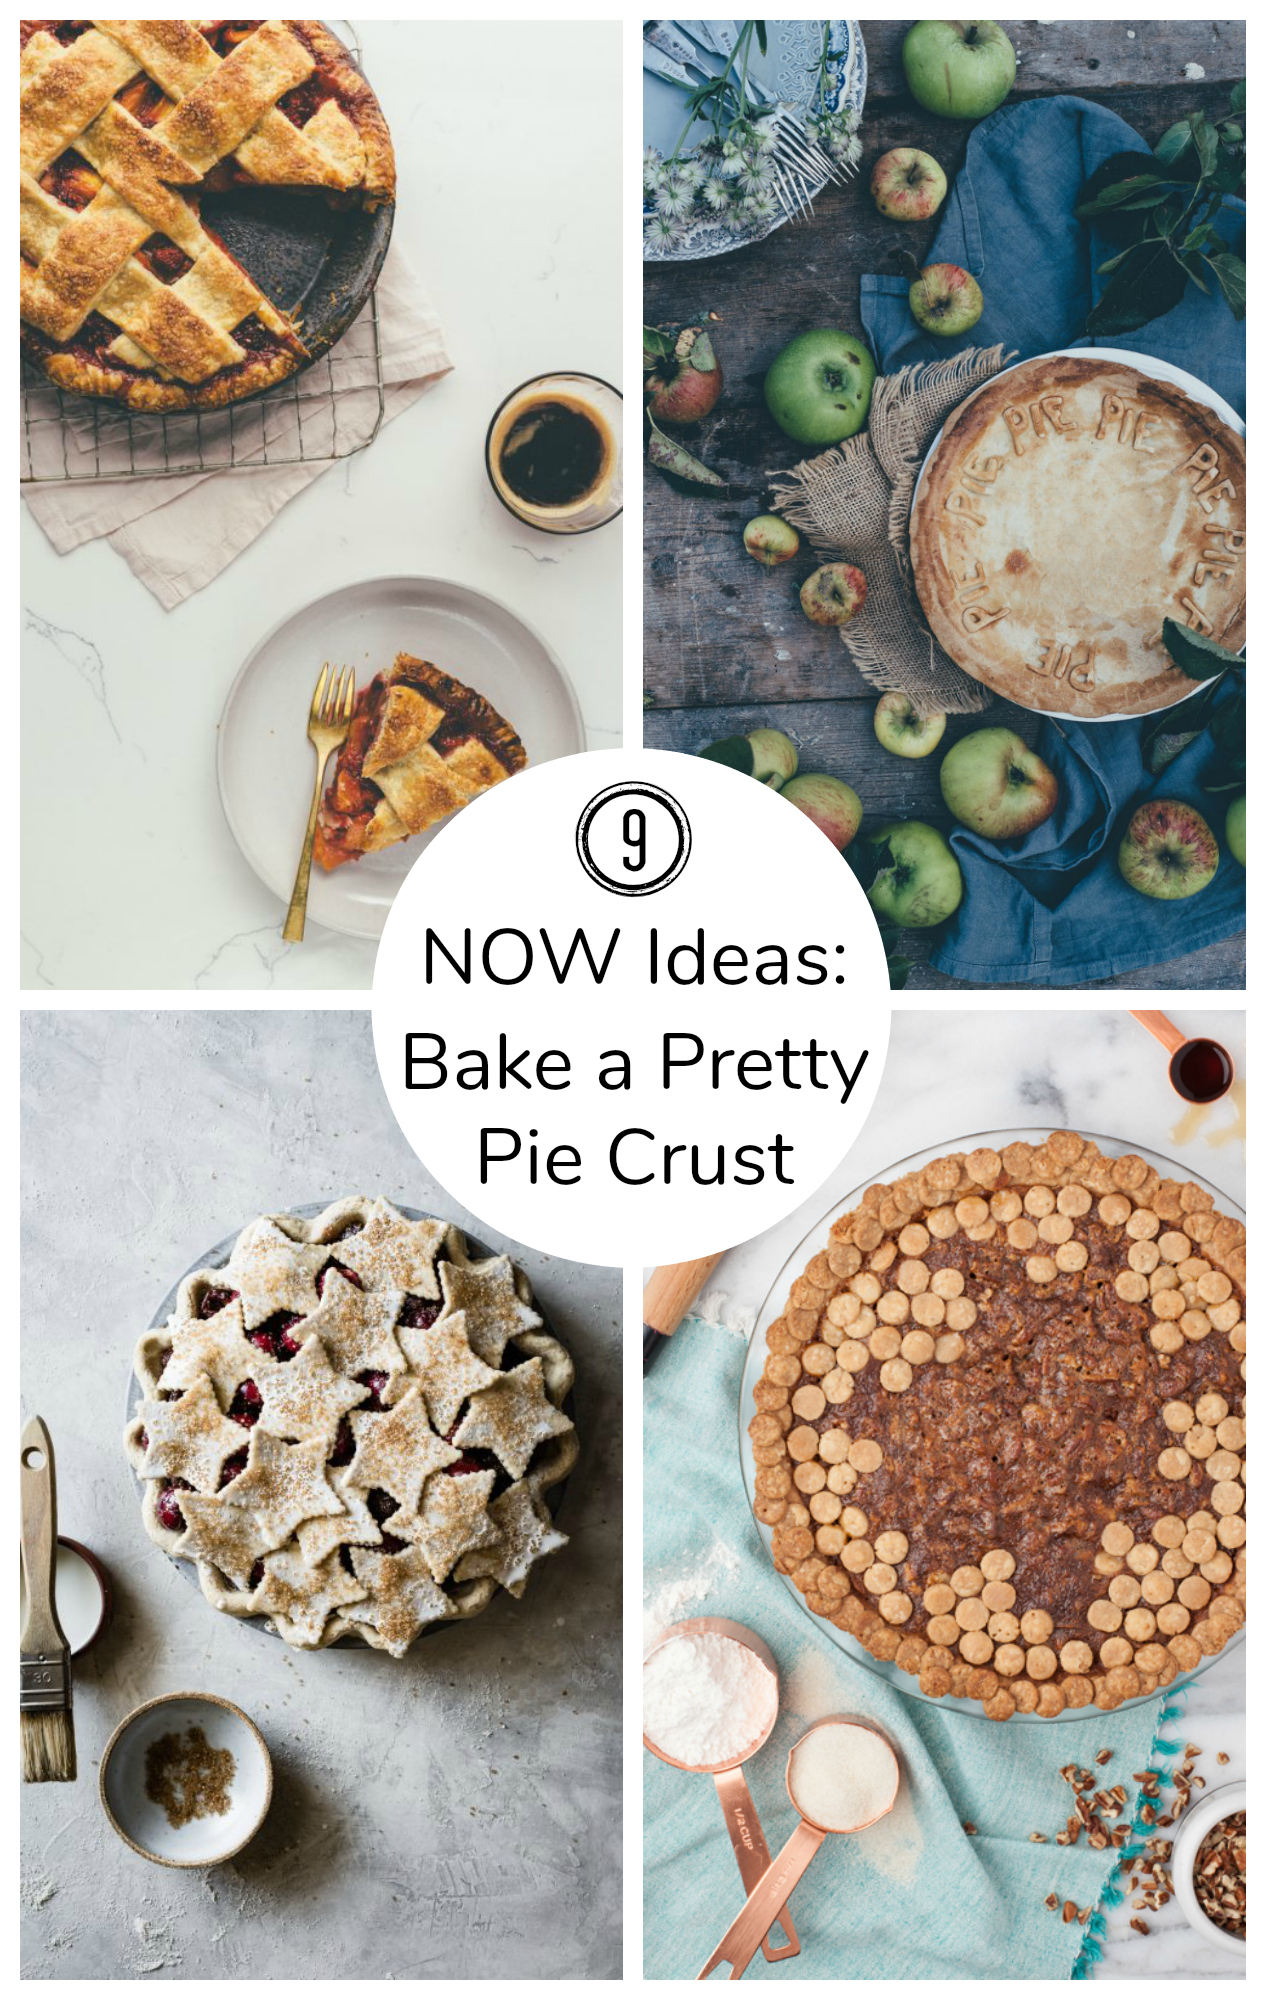 9 NOW Ideas to Bake a Pretty Pie Crust